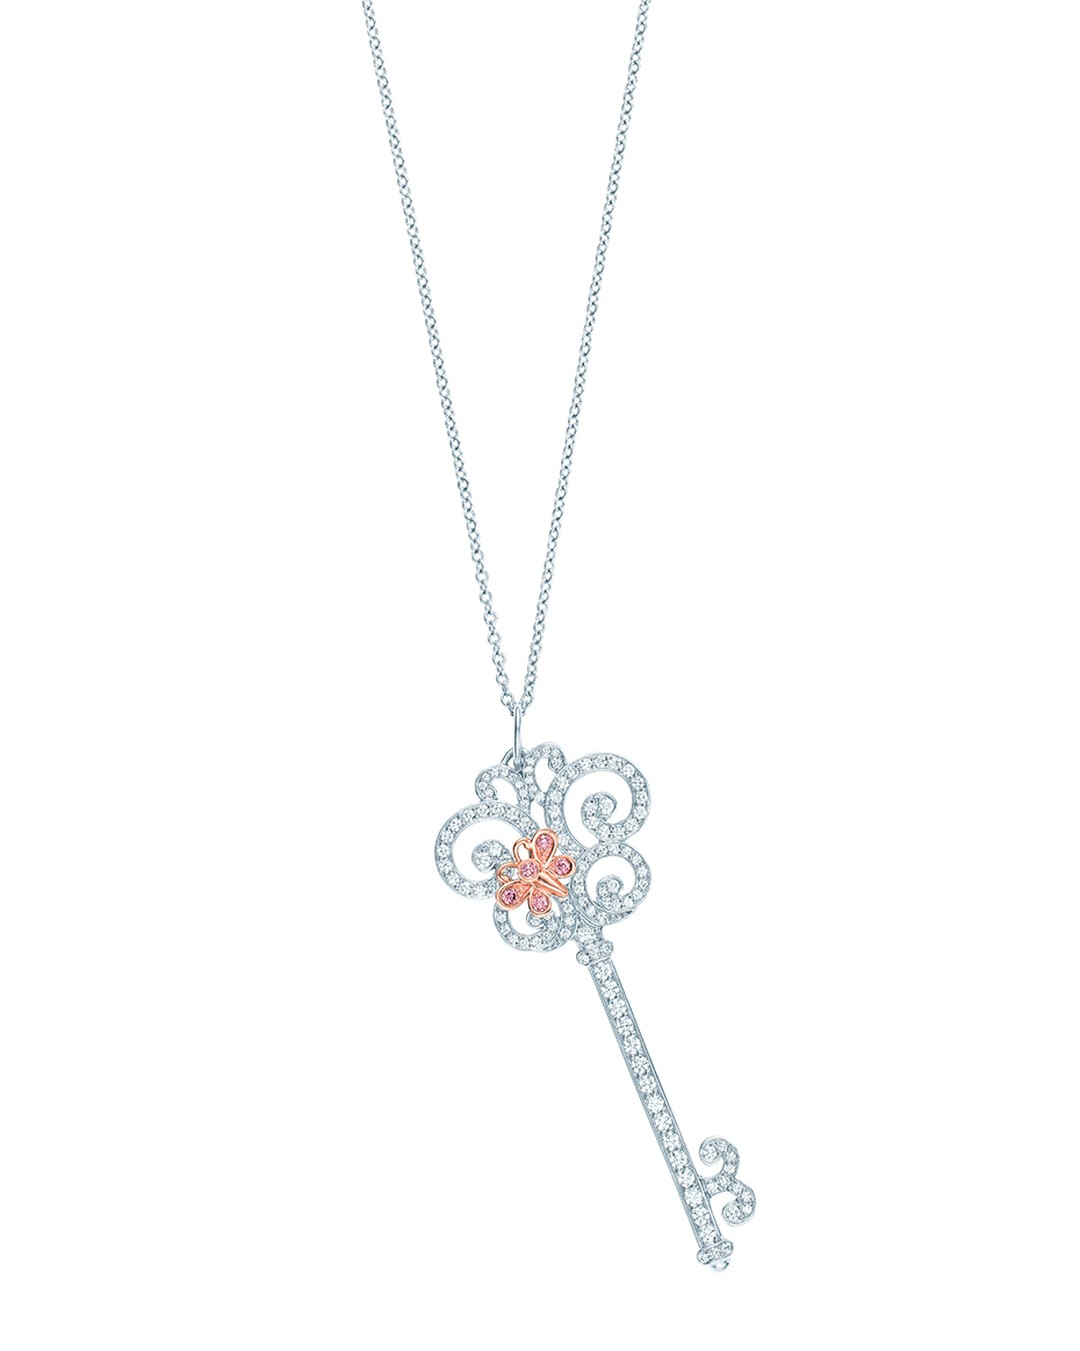 Tiffany Keys Enchant Heart pendant in platinum featuring a pink diamond butterfly set in rose gold perched upon a white diamond key.